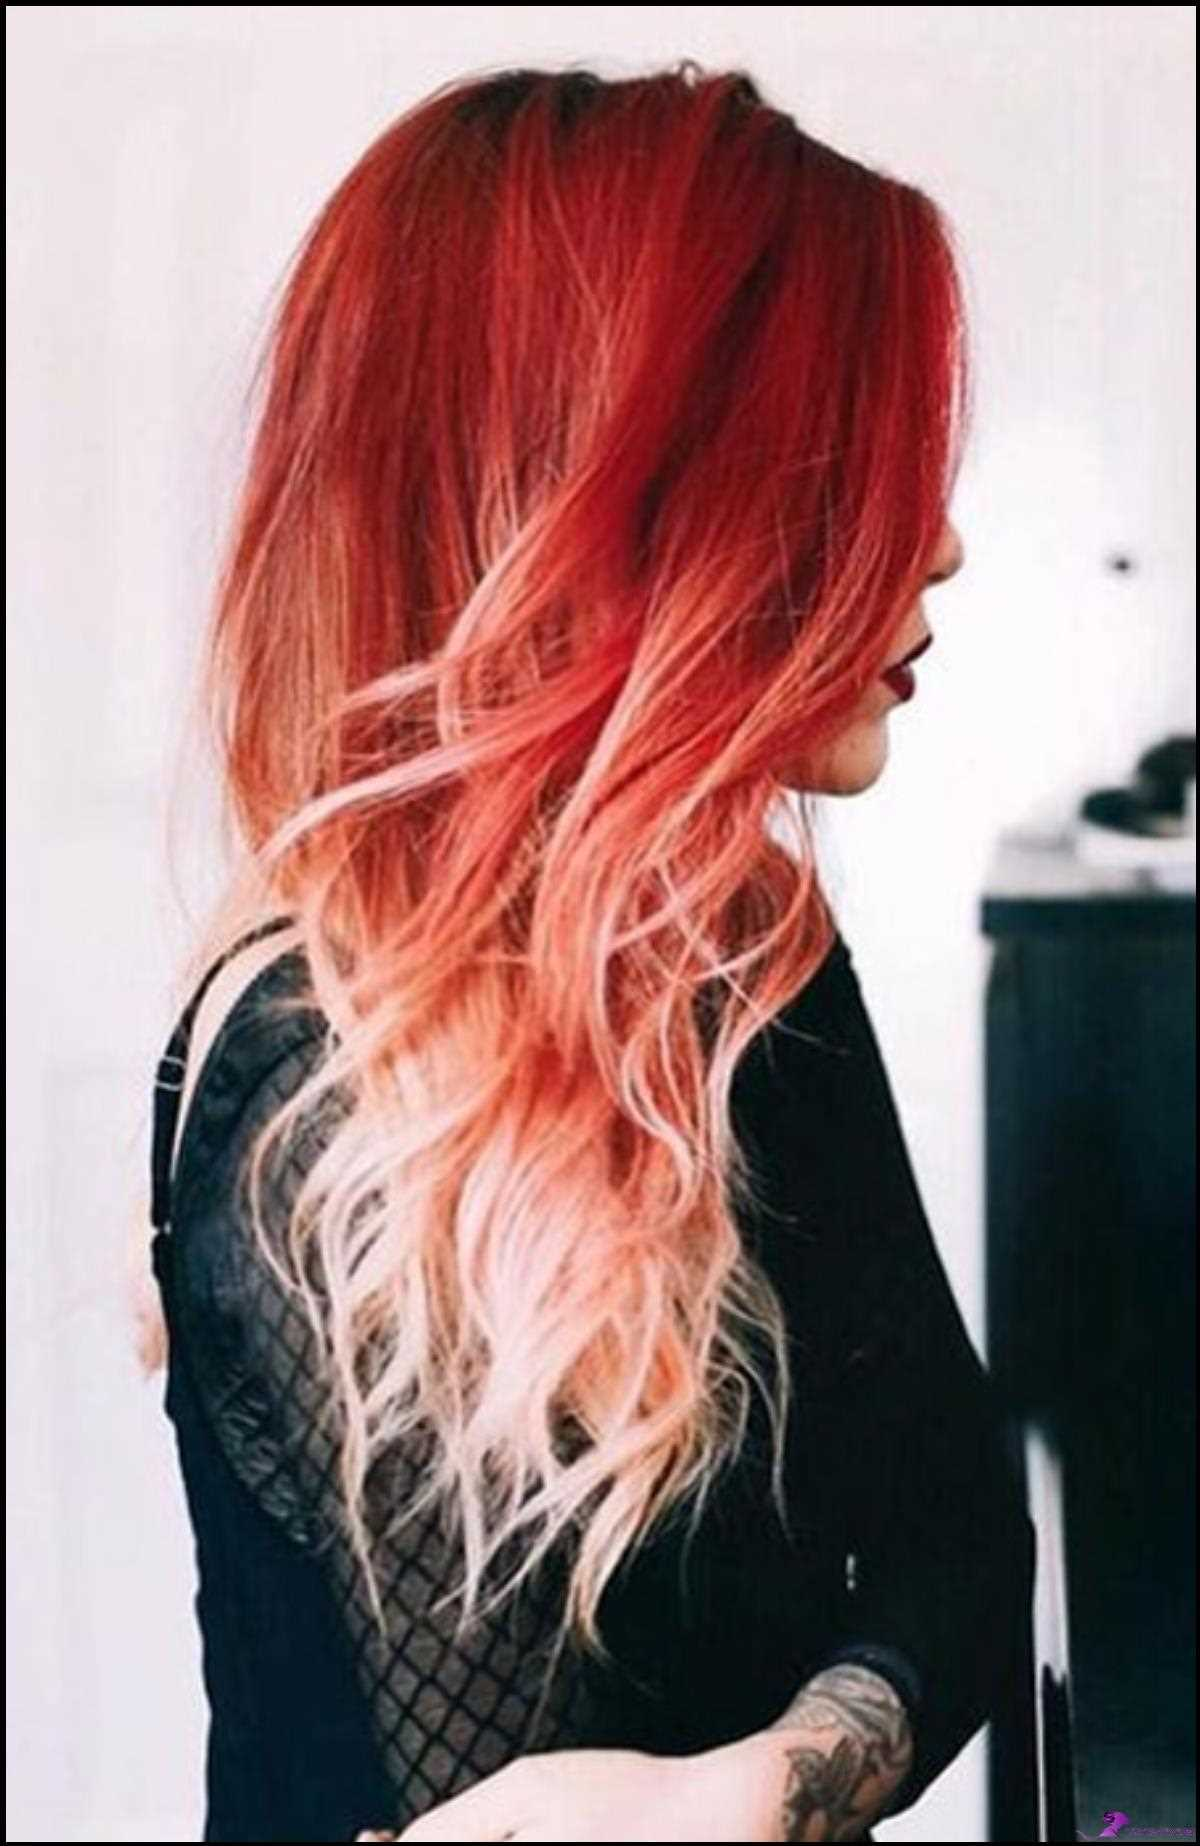 Lockiges rotes Ombre-Haar